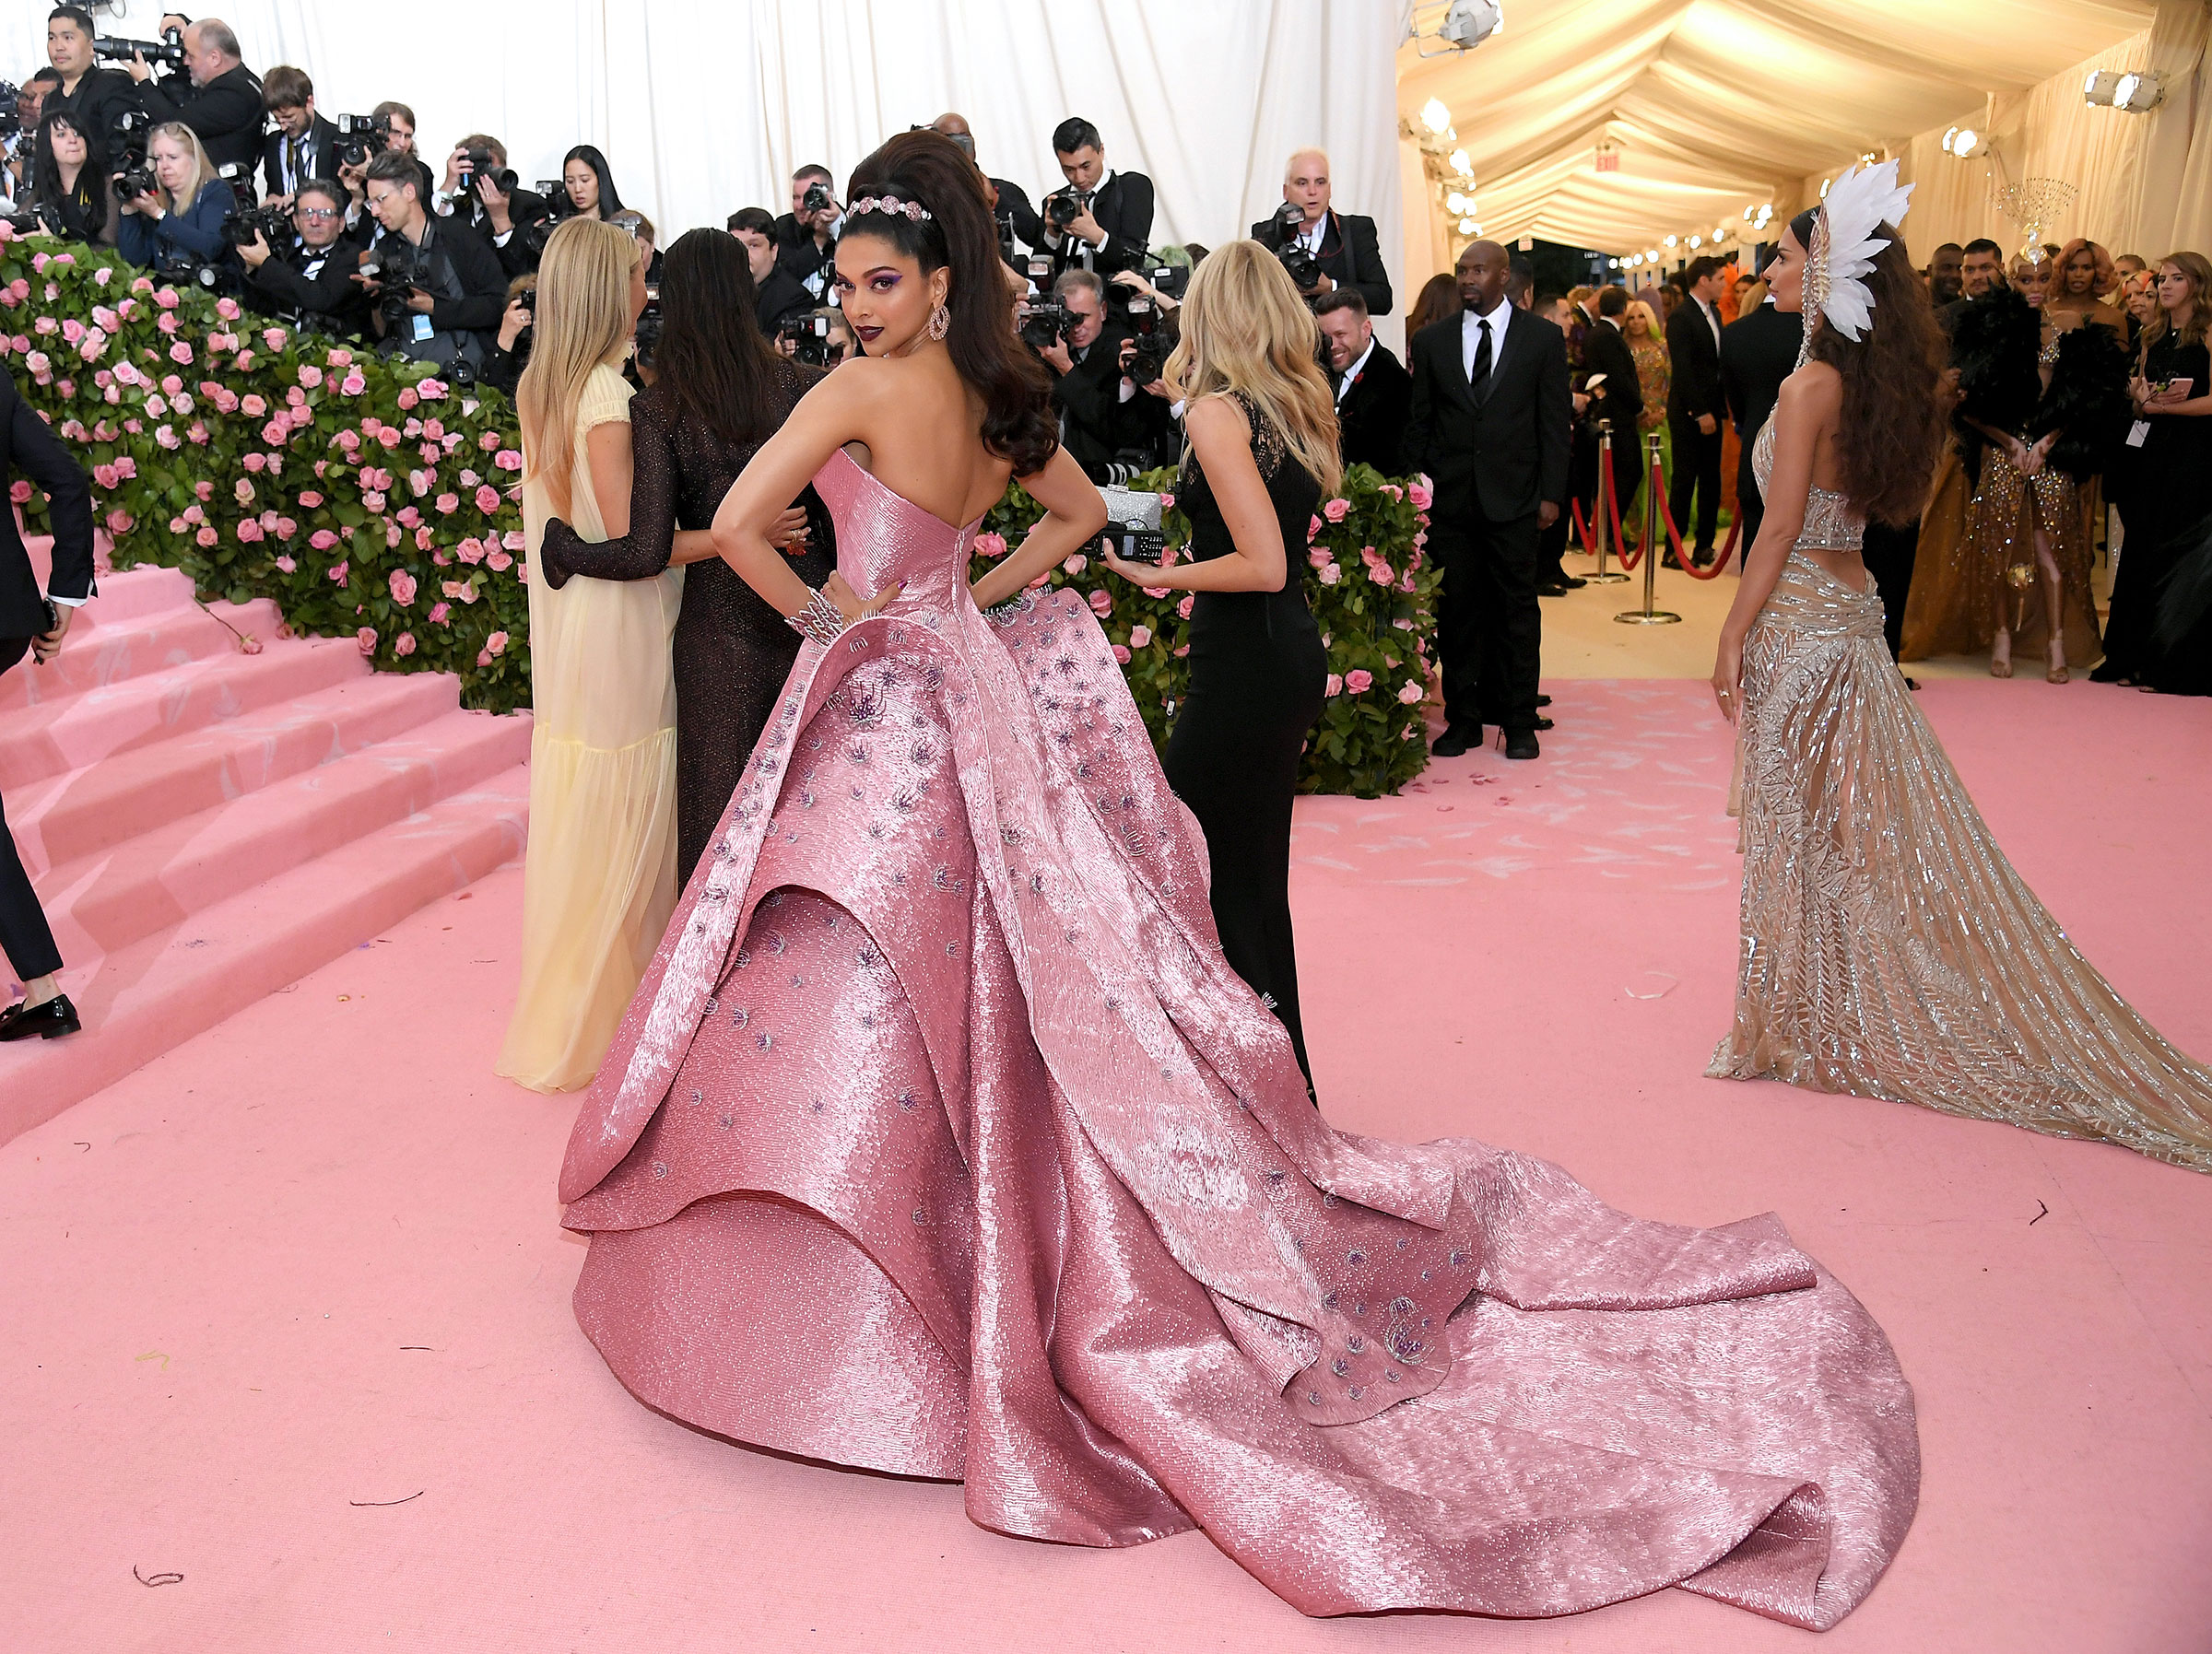 Deepika Padukone attends The 2019 Met Gala Celebrating Camp: Notes on Fashion at Metropolitan Museum of Art on May 06, 2019 in New York City.